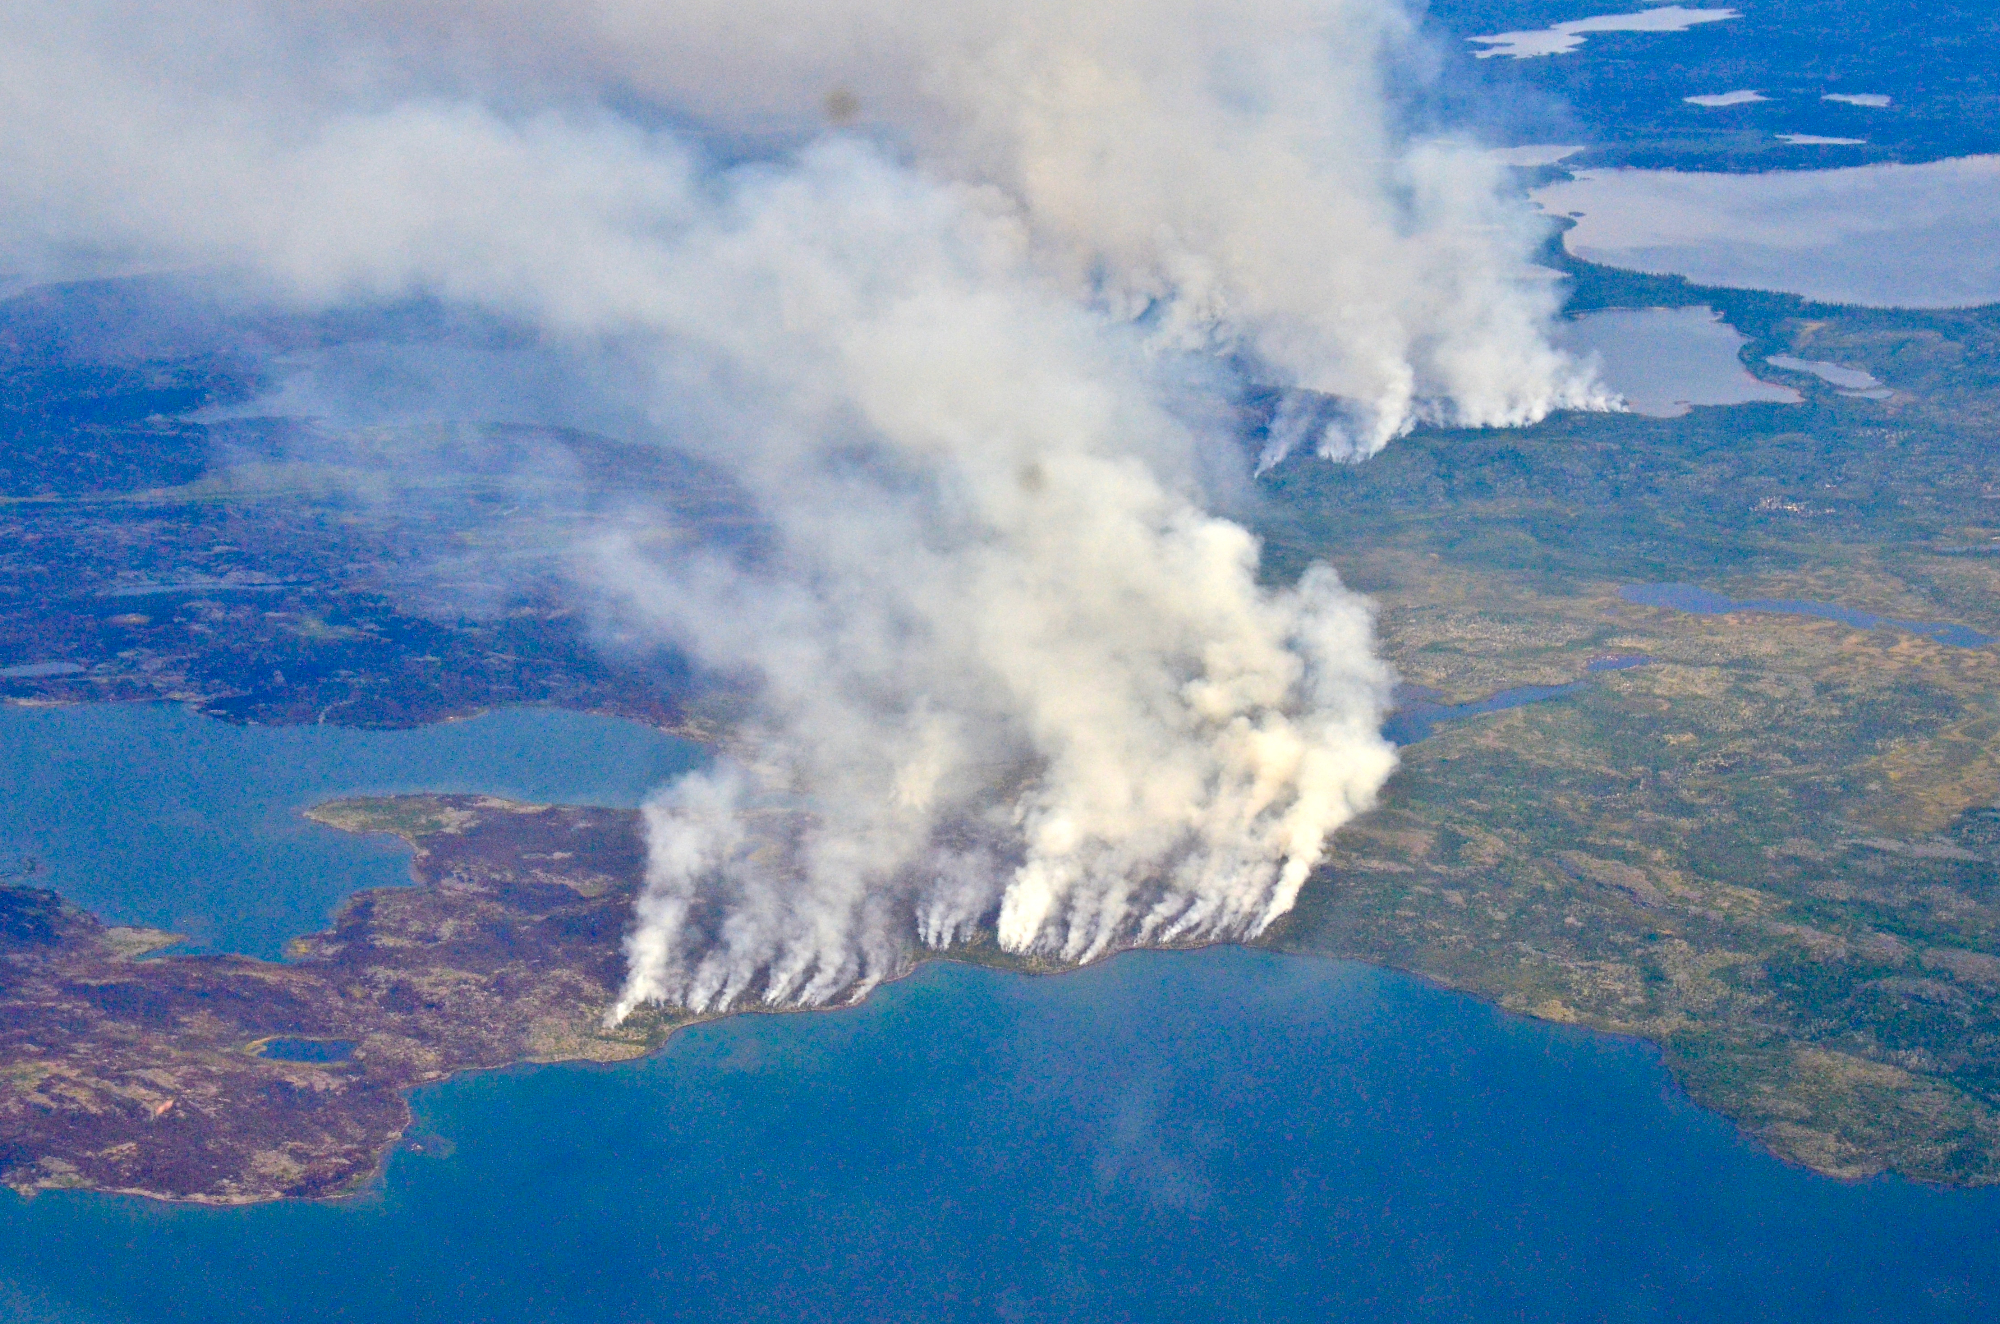 Large smoke plumes drift over land and ocean.